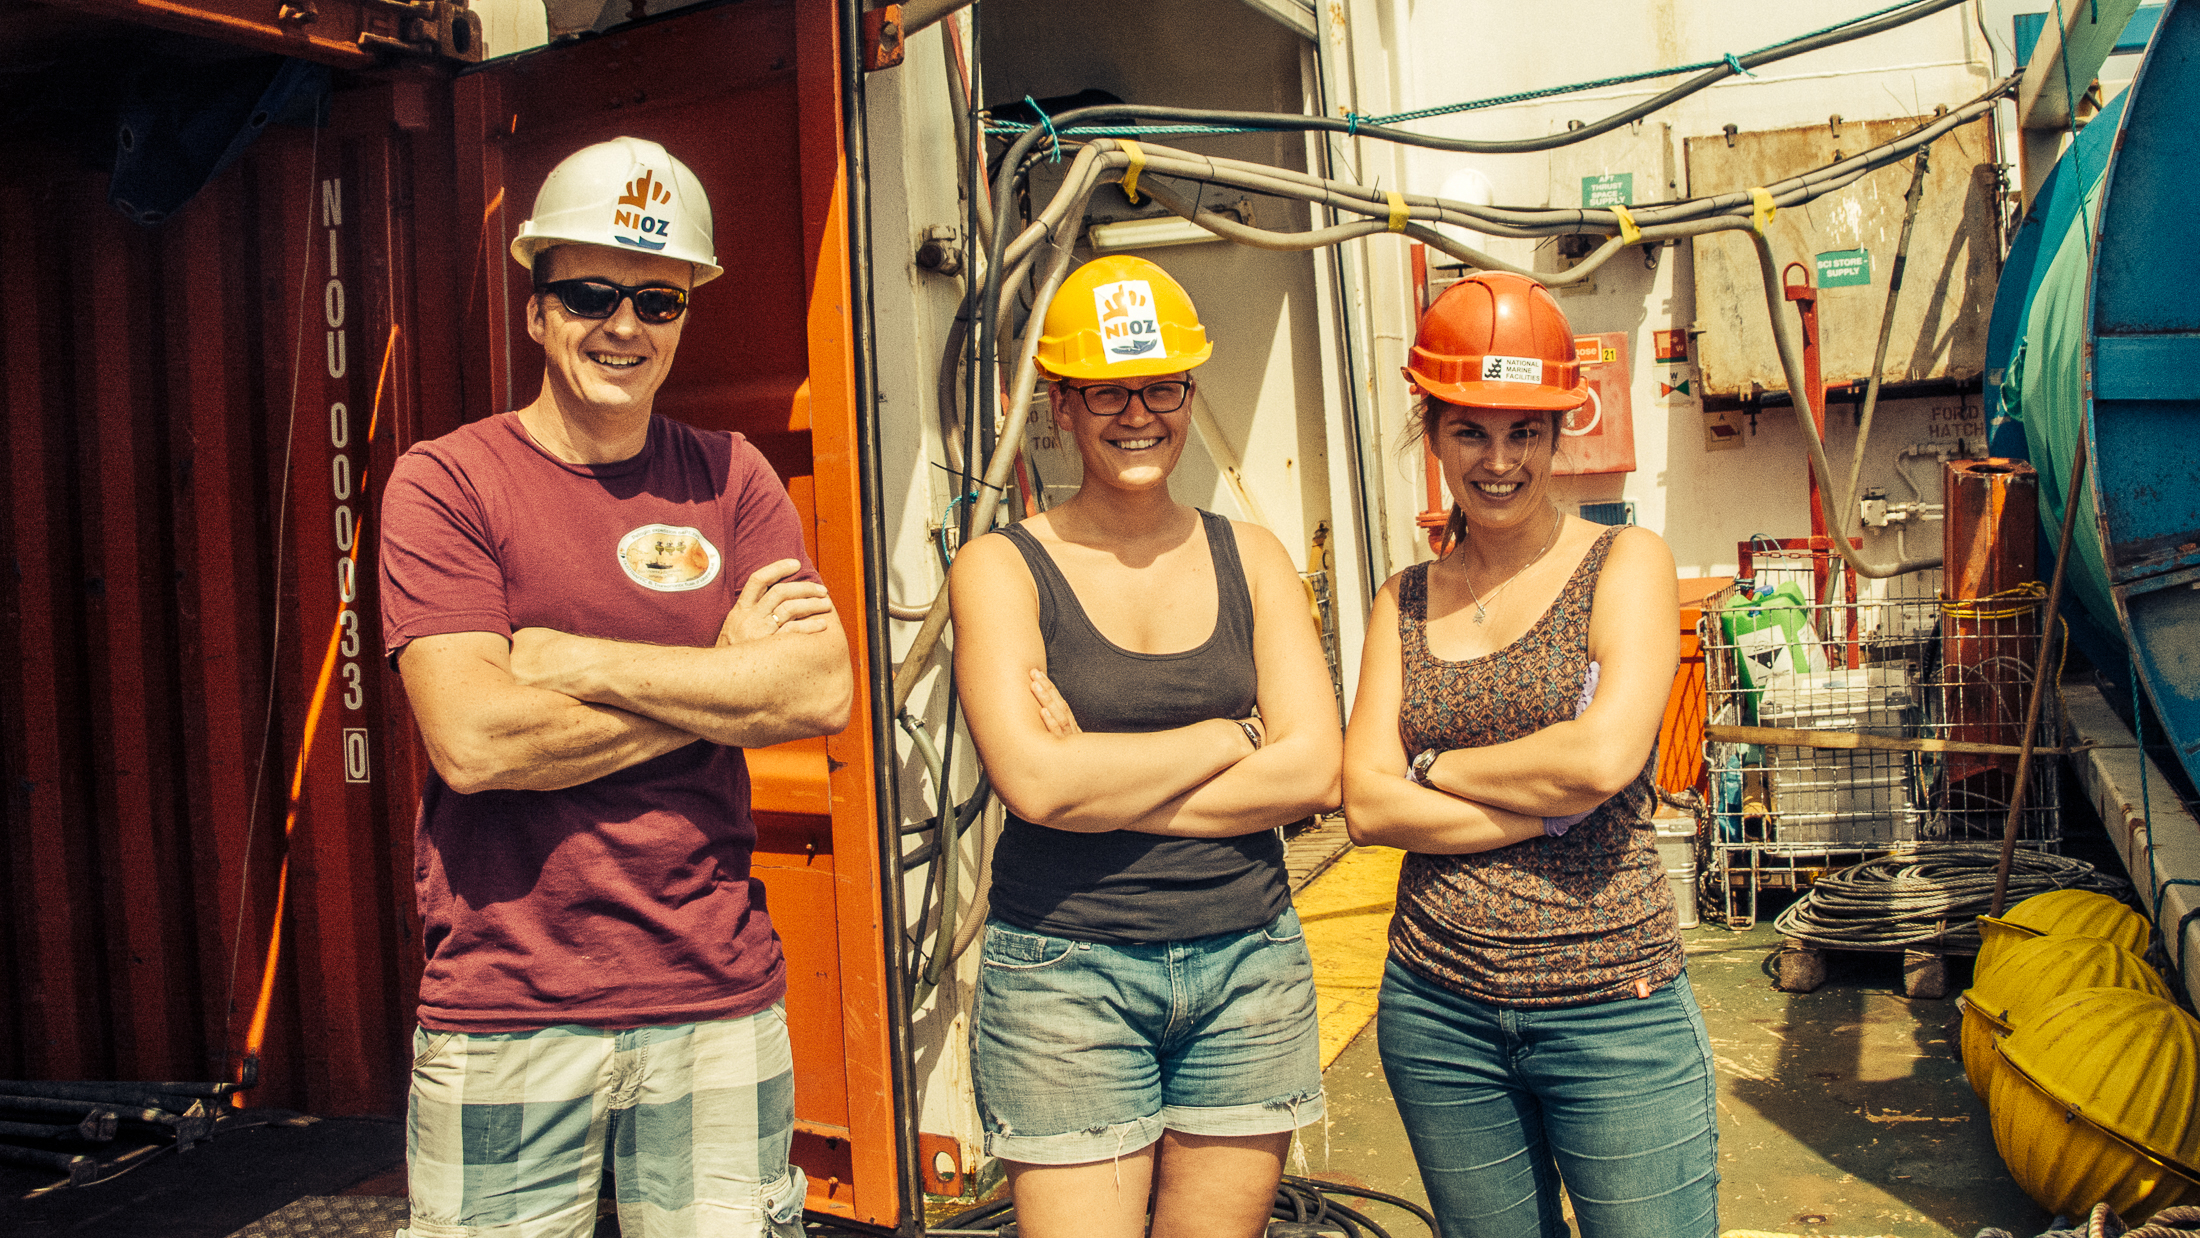 This is Jan-Berend Stuut (left), our chief scientist and the PI of TRAFFIC and DUSTTRAFFIC projects; and Laura Korte (middle) and Michelle van der Does (right), both doing their PhD on material retrieved from the transatlantic array of sediment traps.